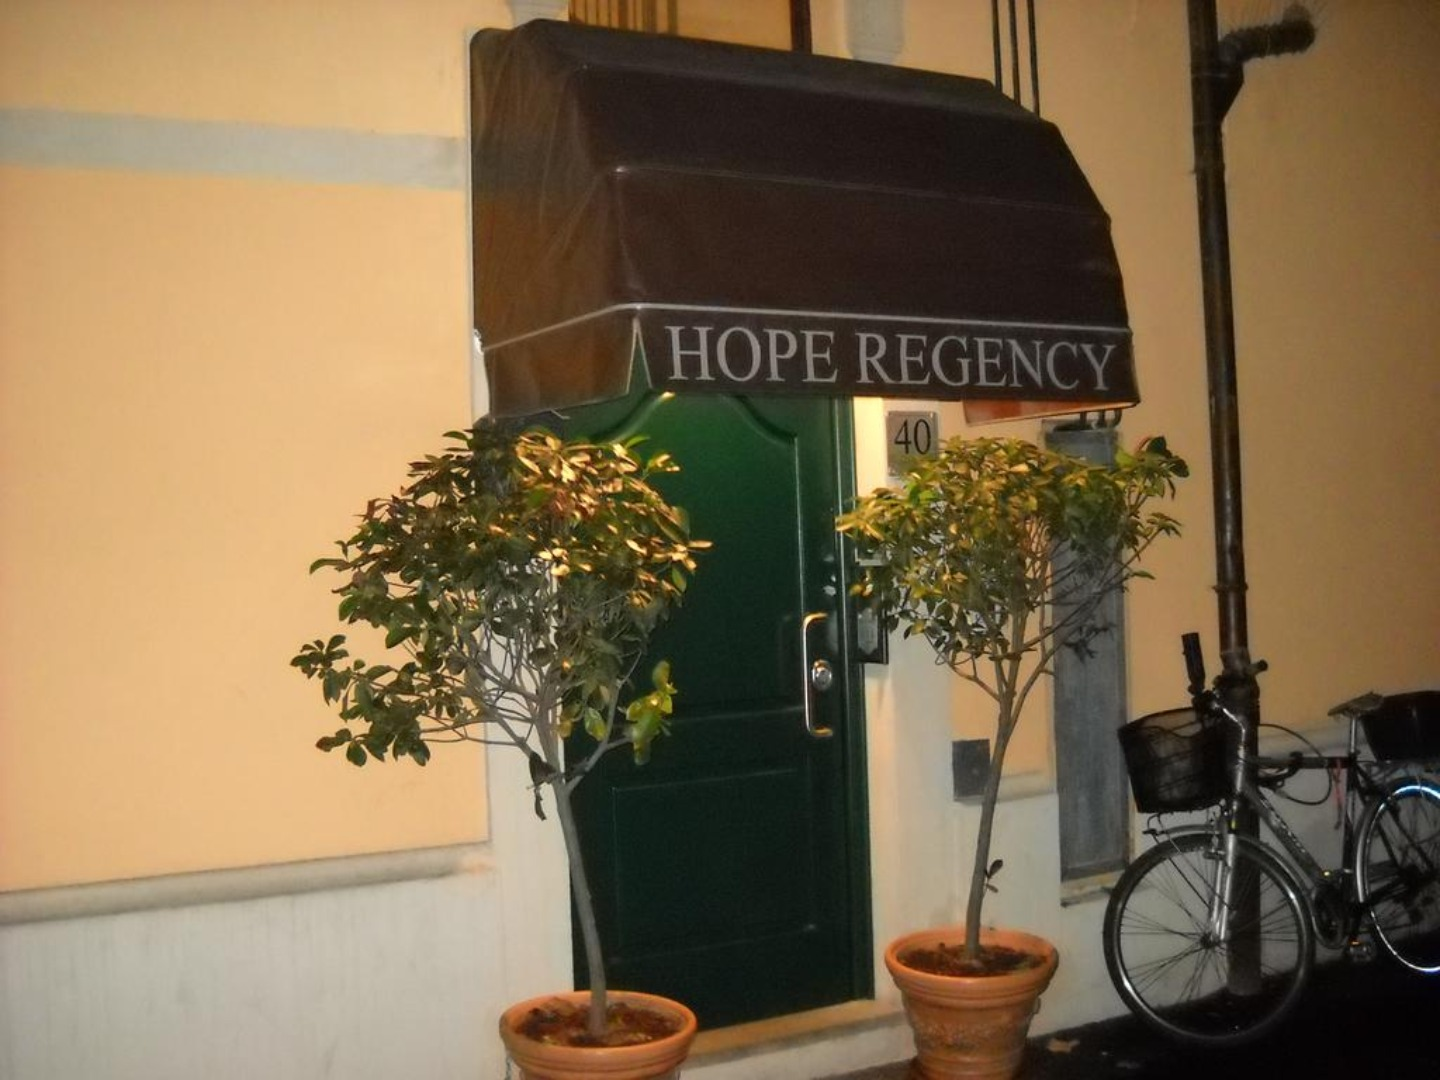 A plant in front of a window at HOPE.